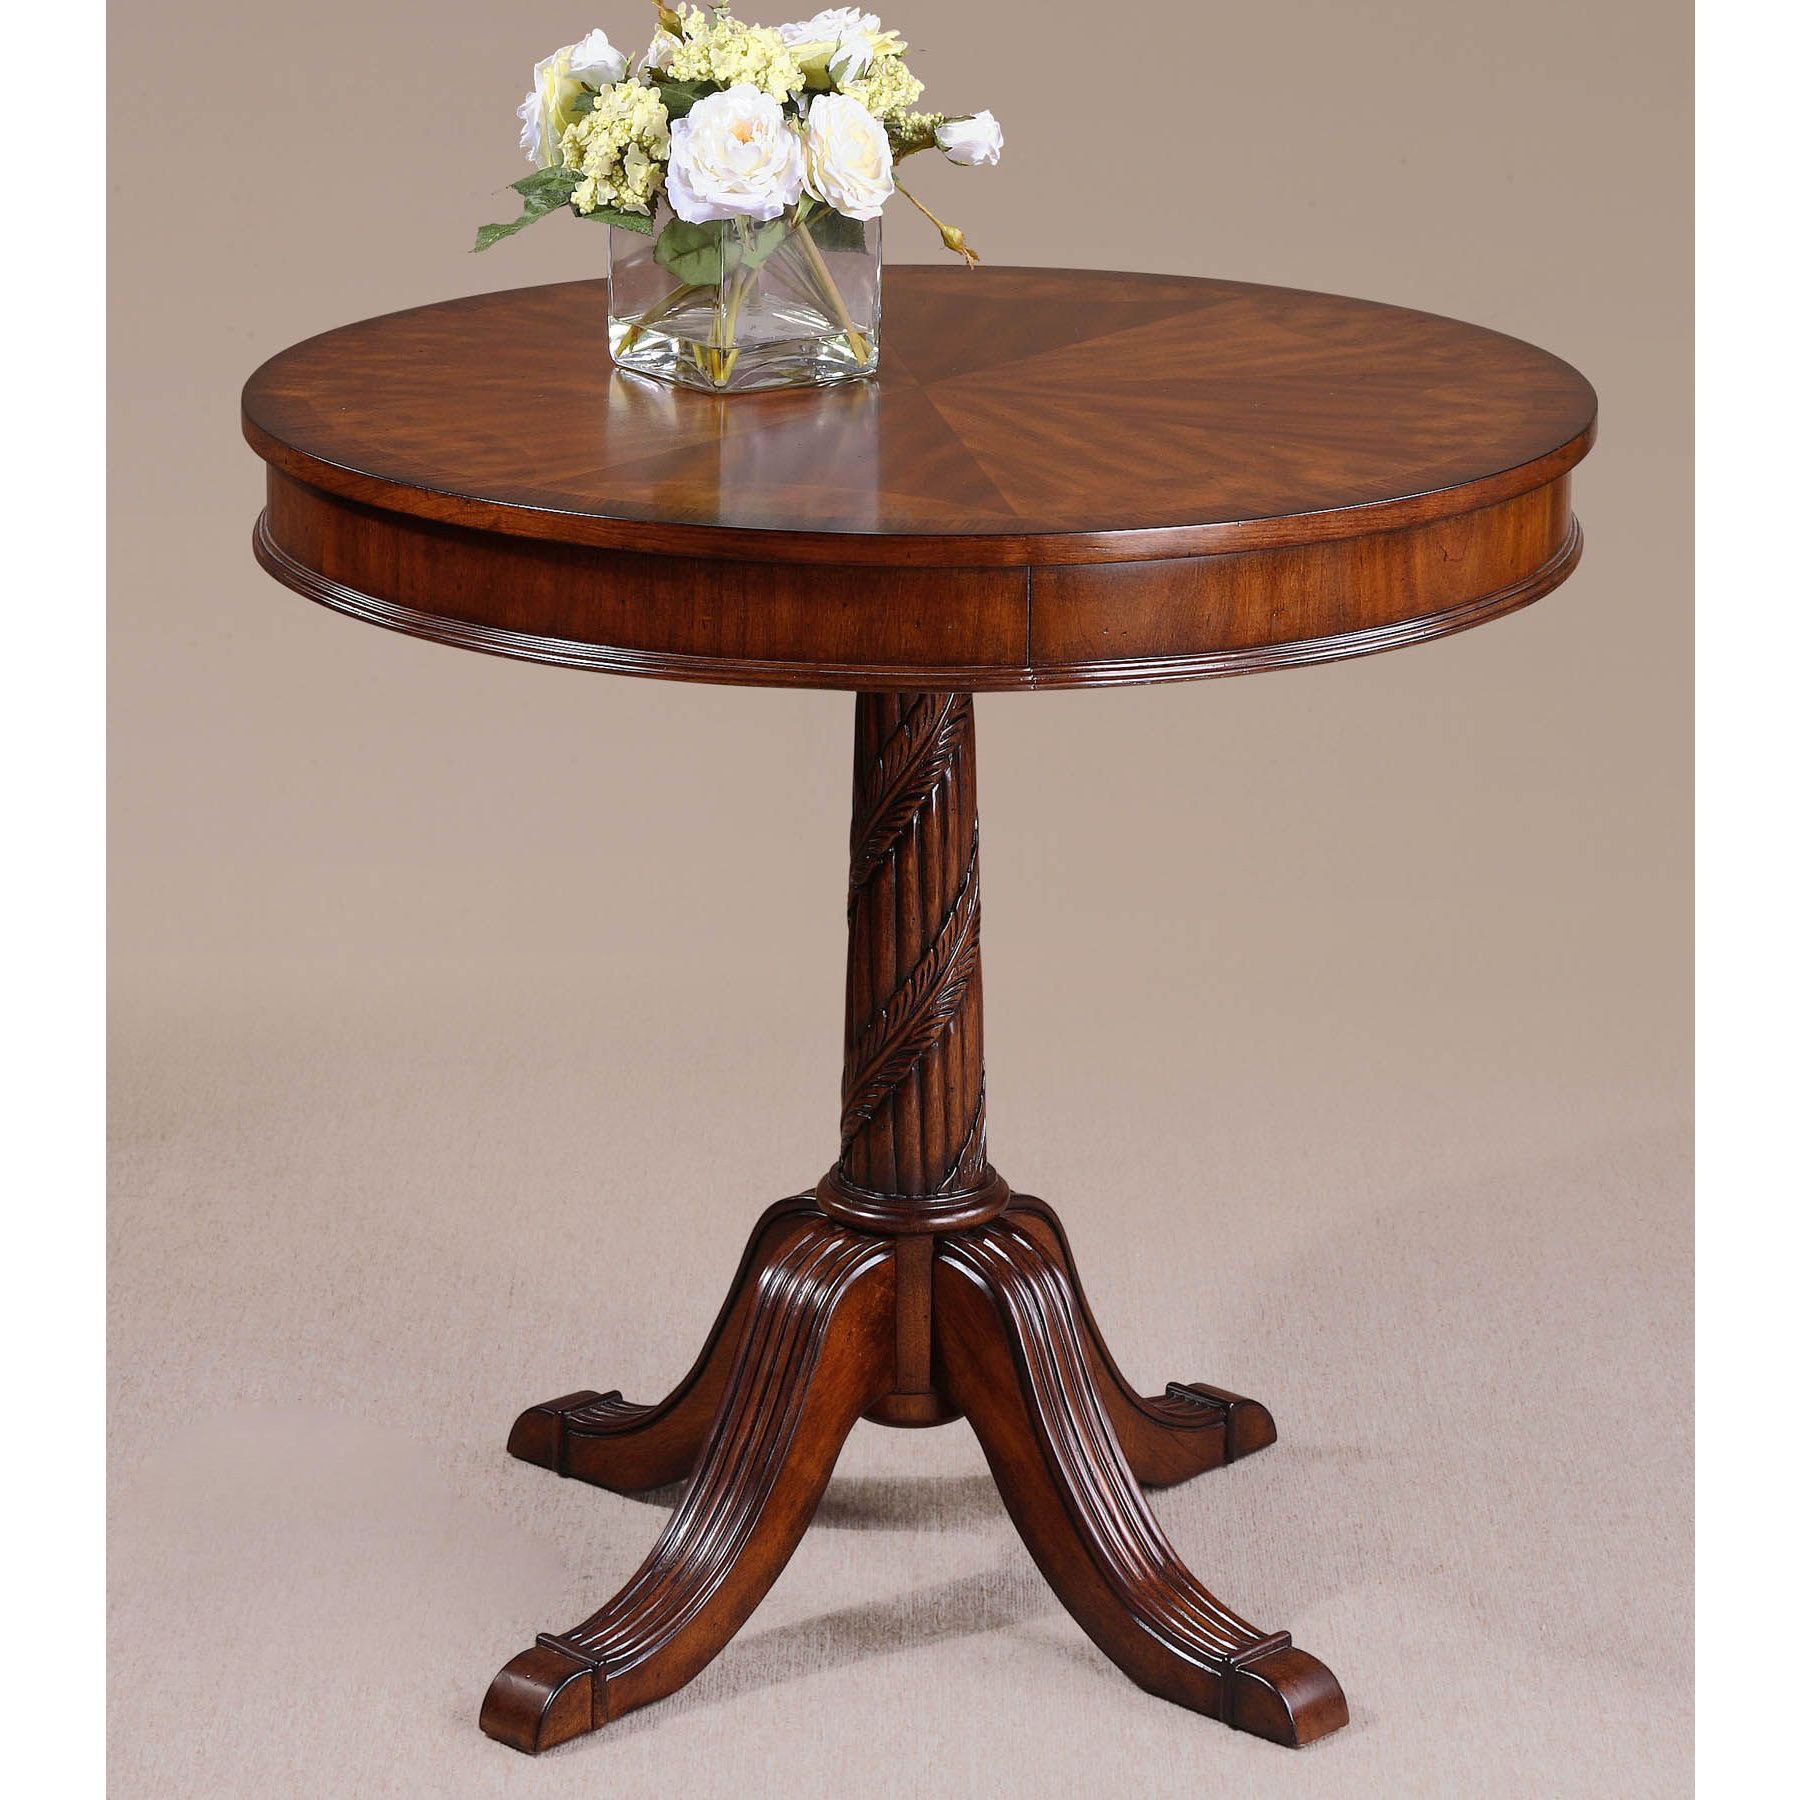 The brakefield table features an elegant polished pecan finish over